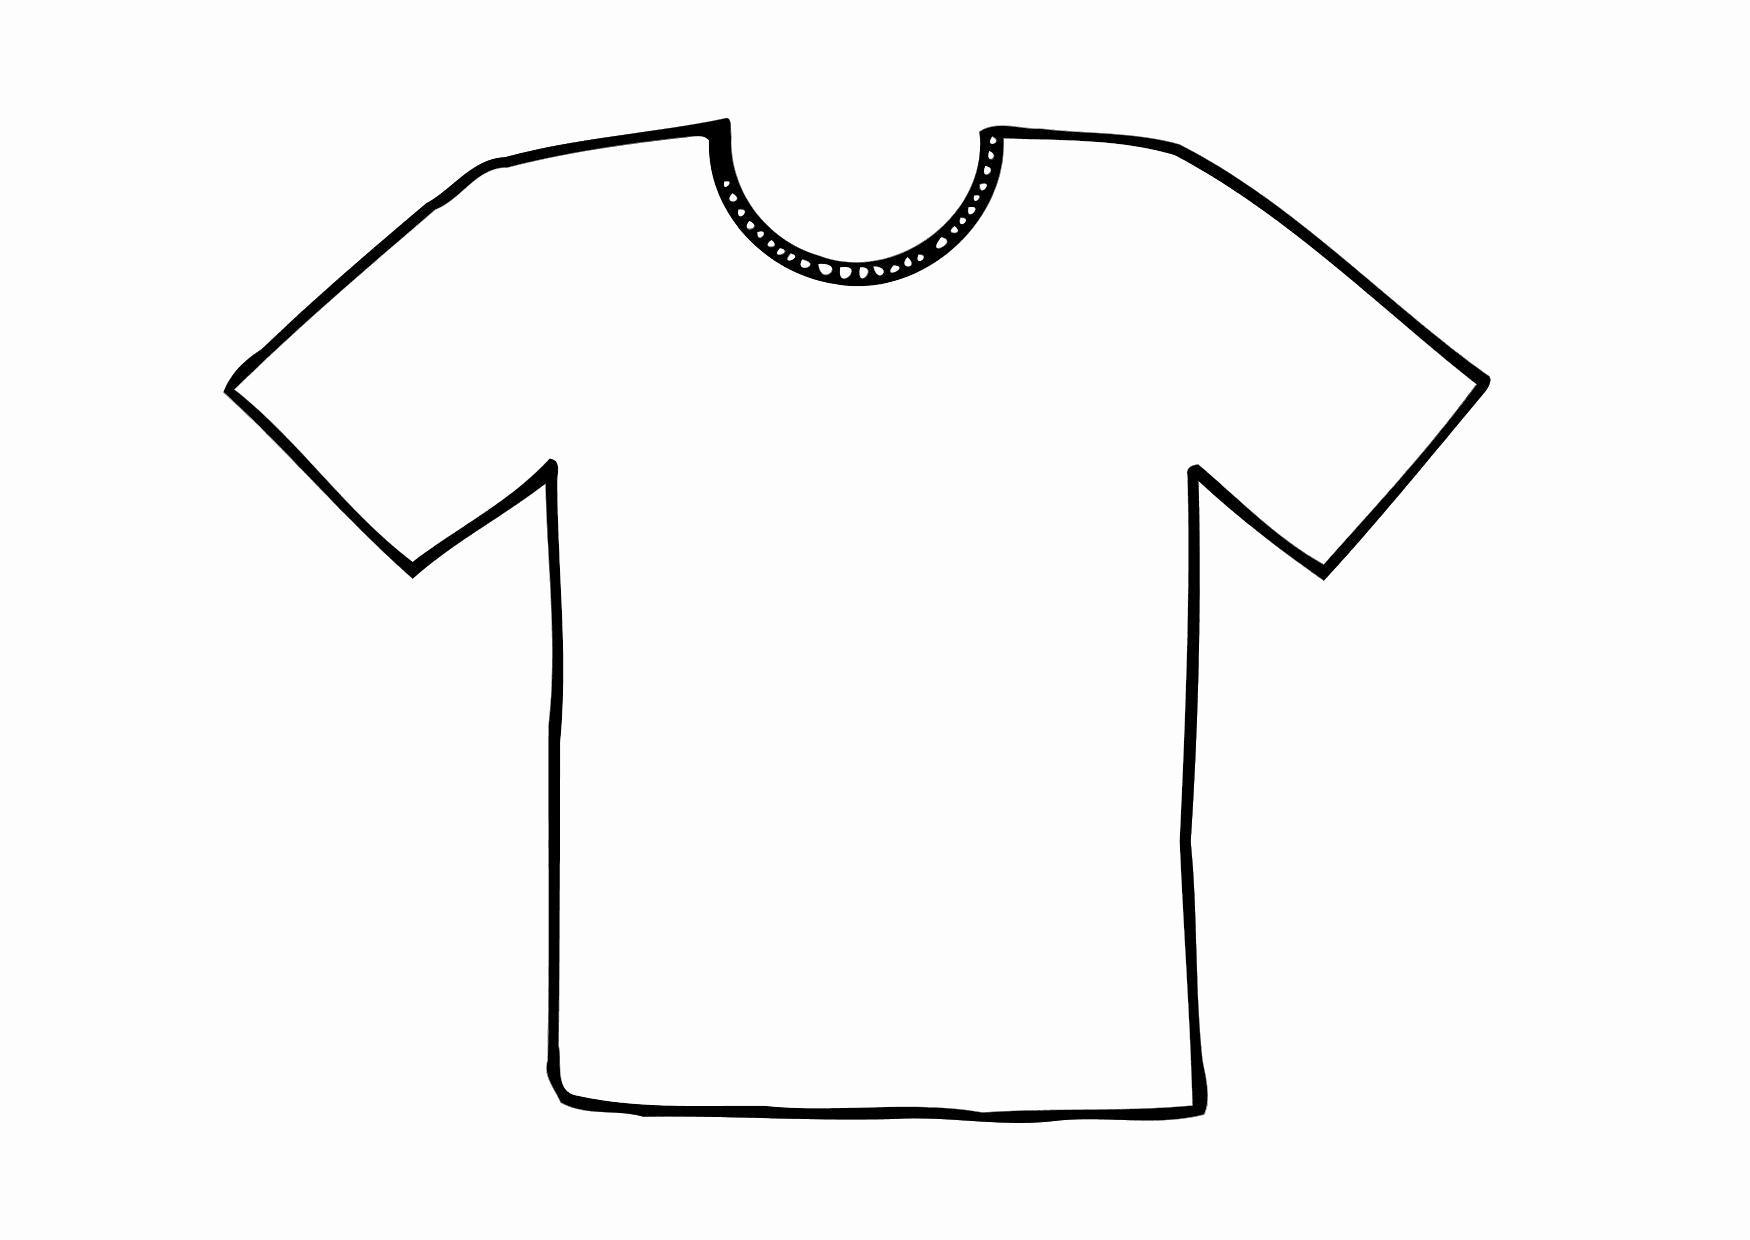 Printable T Shirt Templates Elegant Printable Tshirt Template Printable 360 Degree